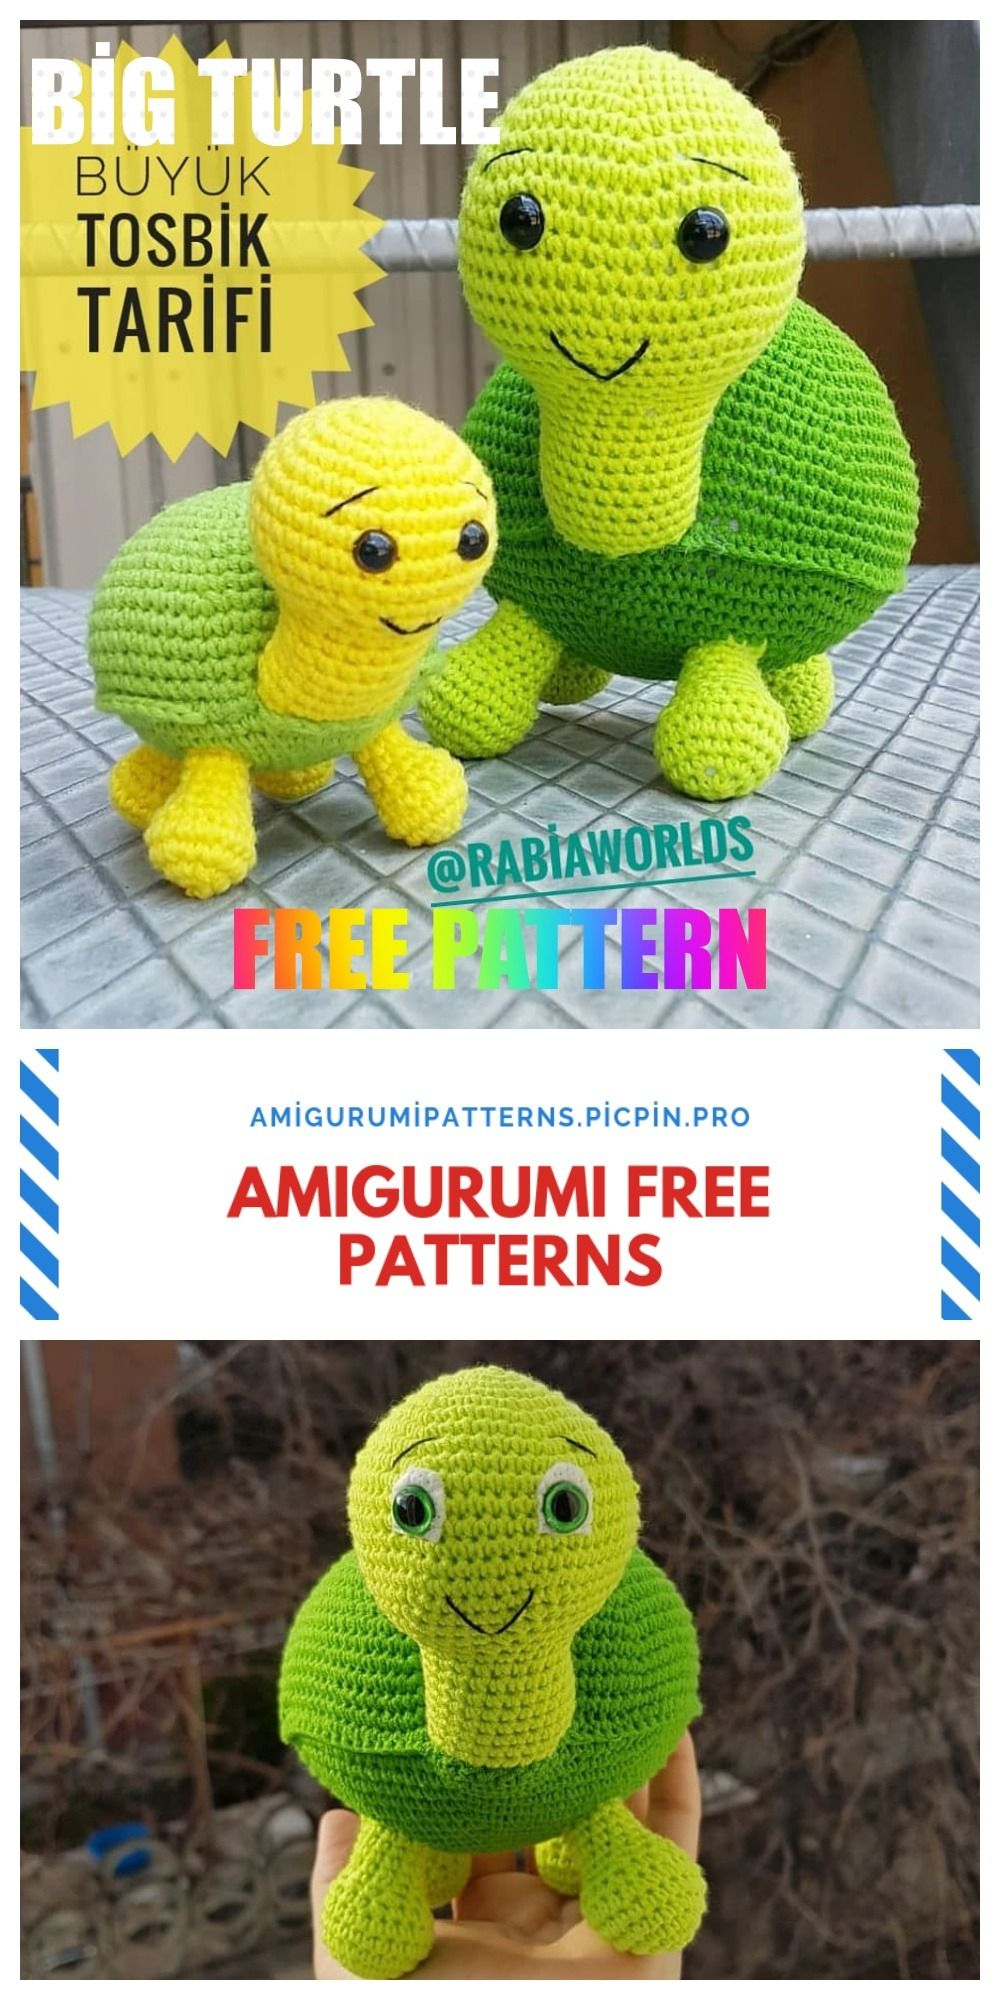 Amigurumi Big Turtle Free Crochet Pattern - Amigurumi Patterns #crochetturtles